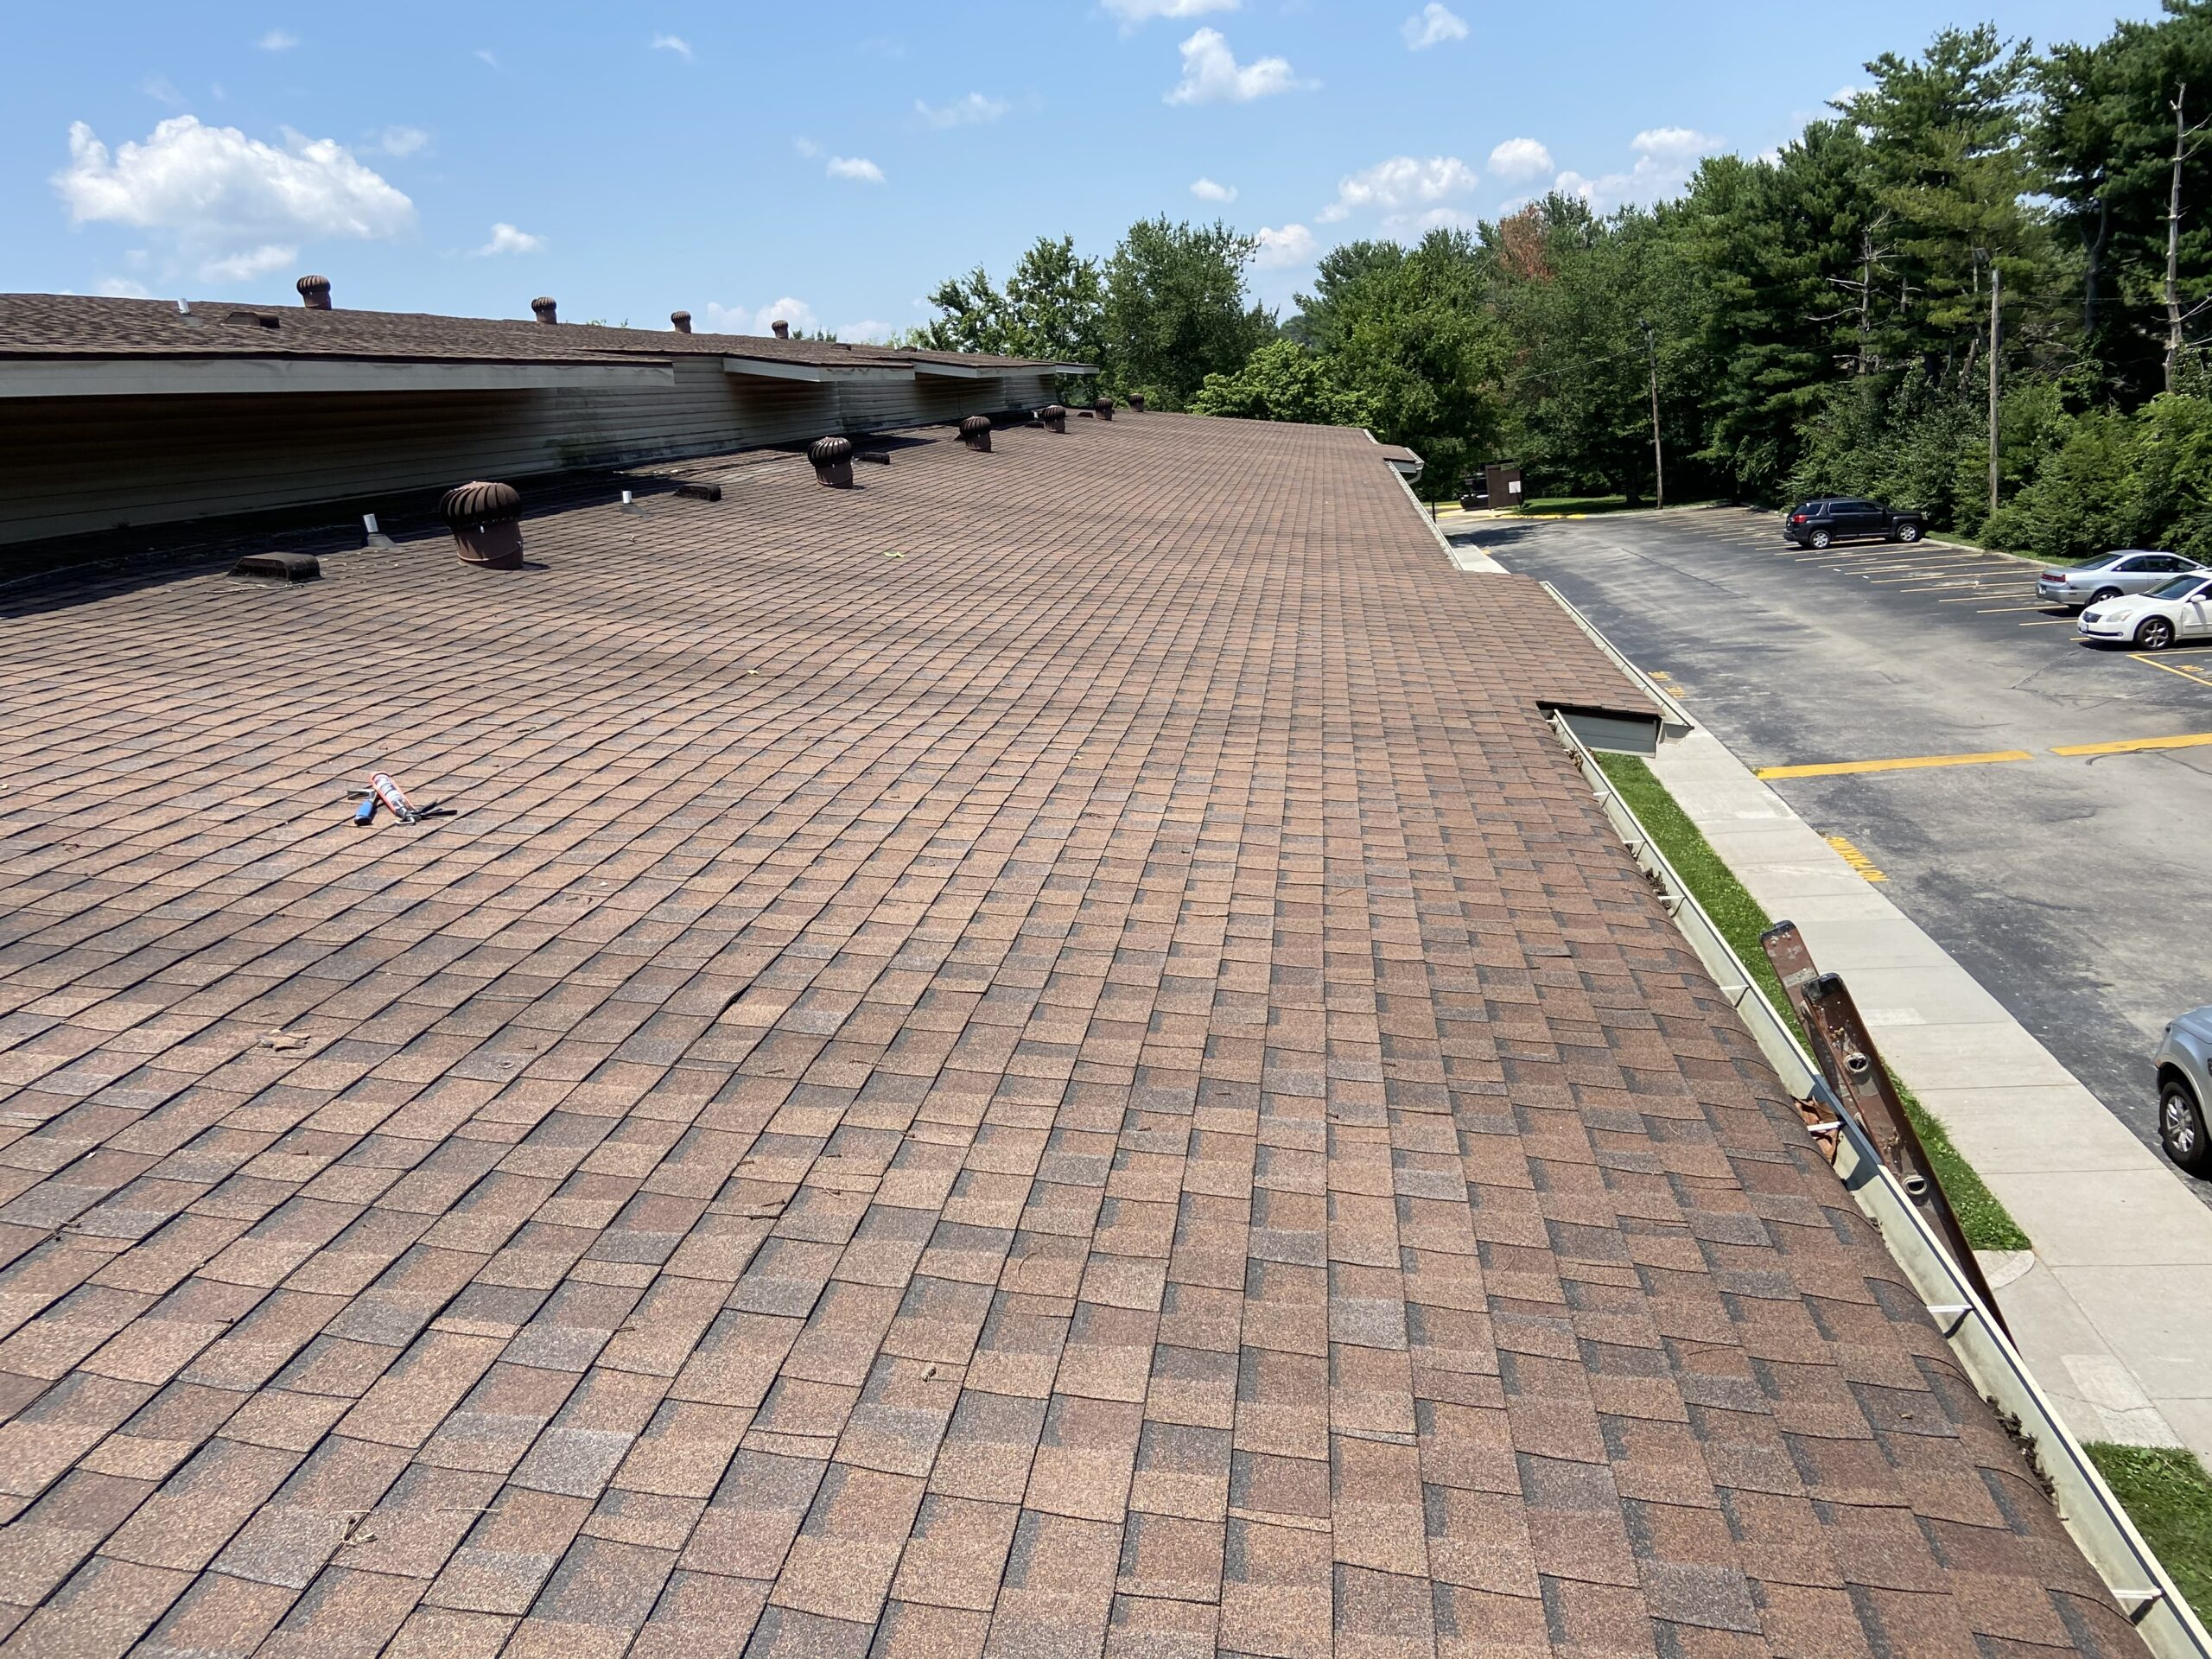 this is a picture of brown shingles on an apartment complex roof